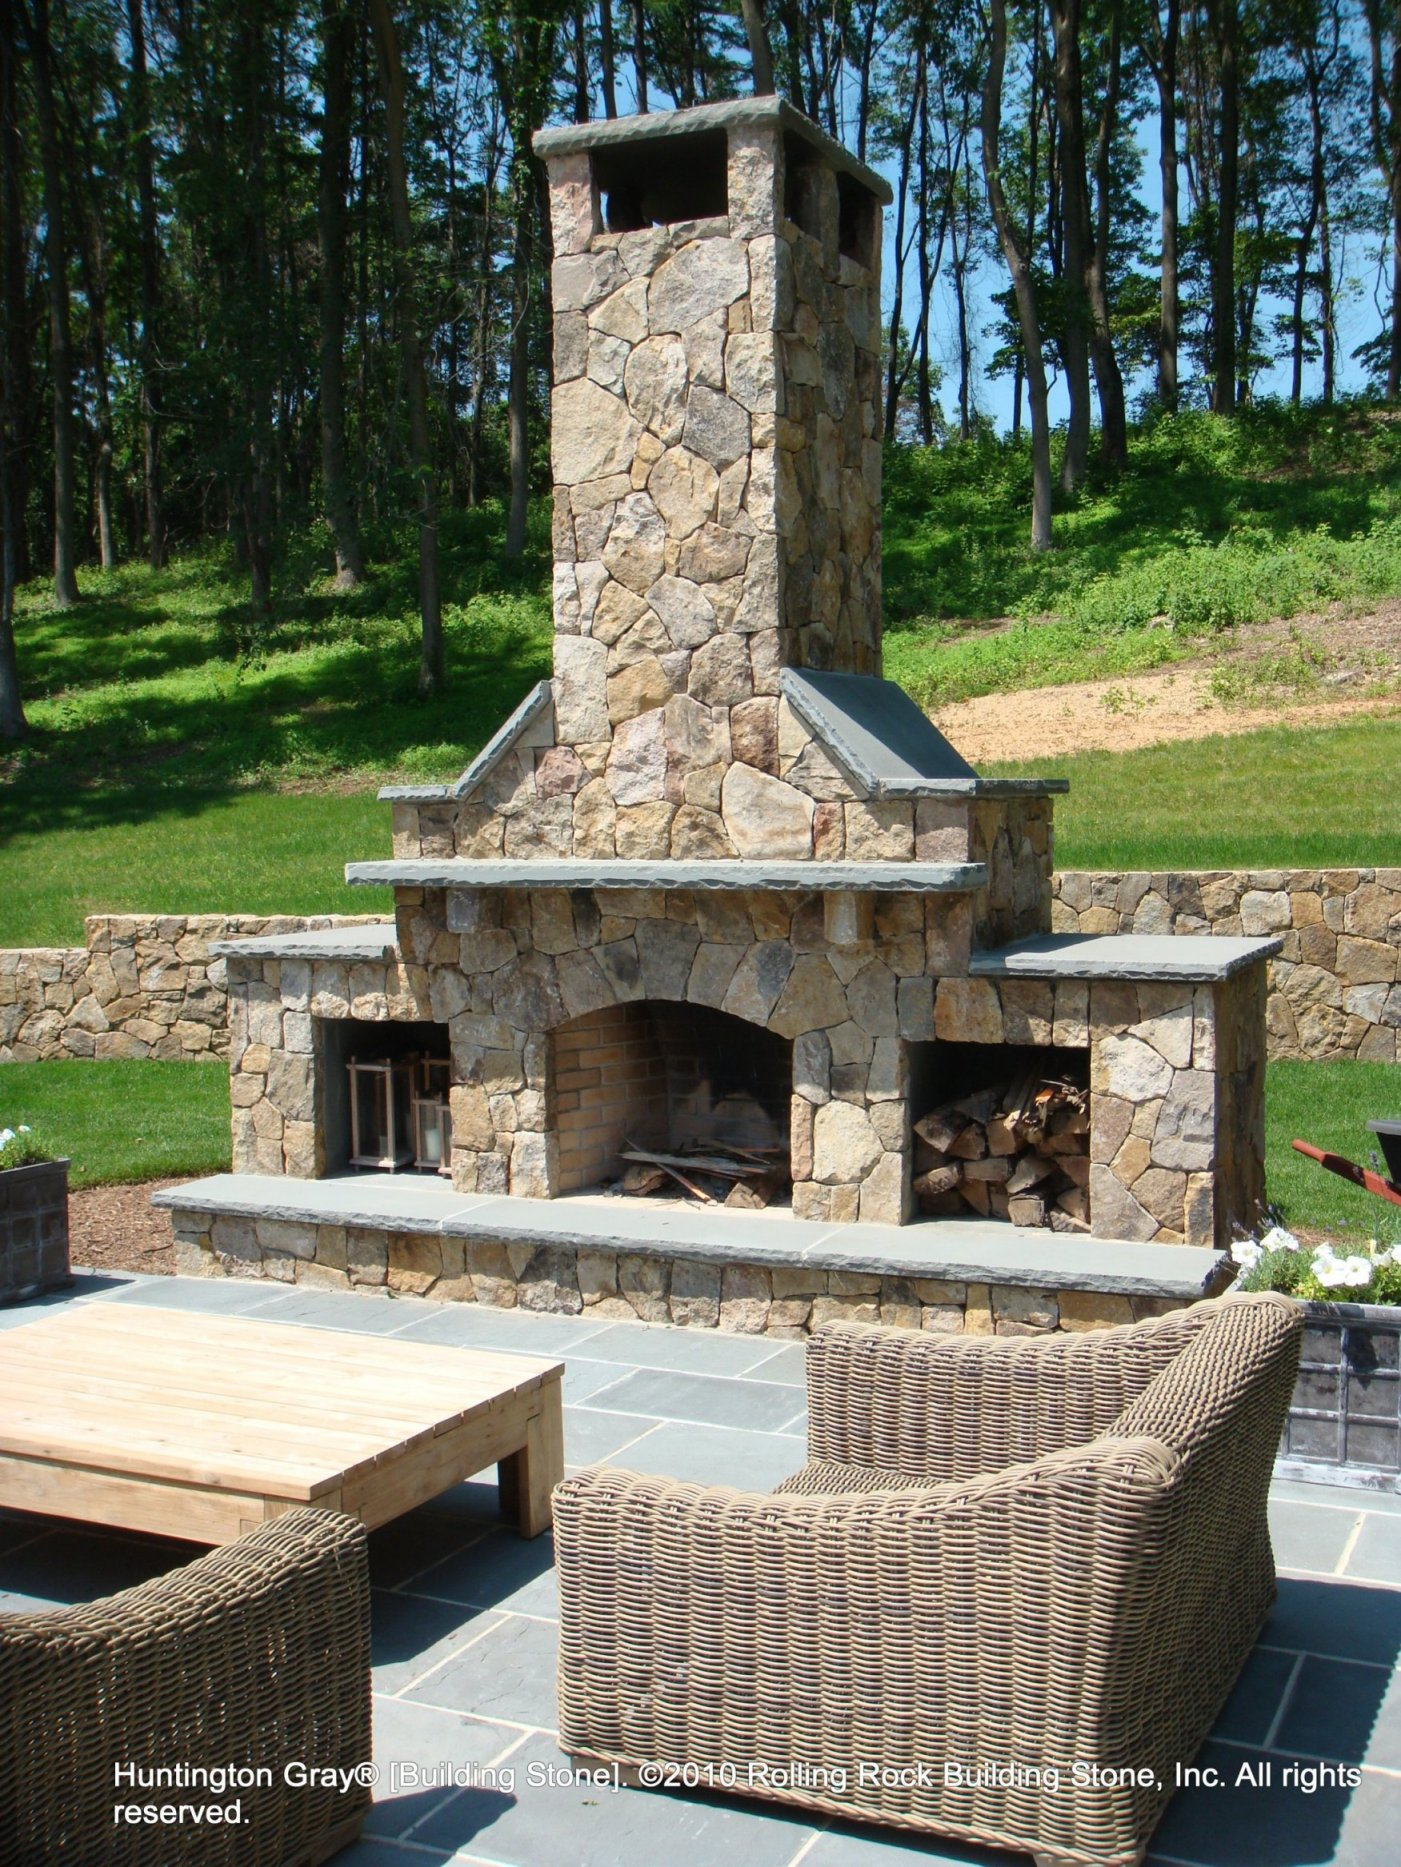 Outdoor Living | Rolling Rock Building Stone, Inc. on Outdoor Living Buildings id=67505